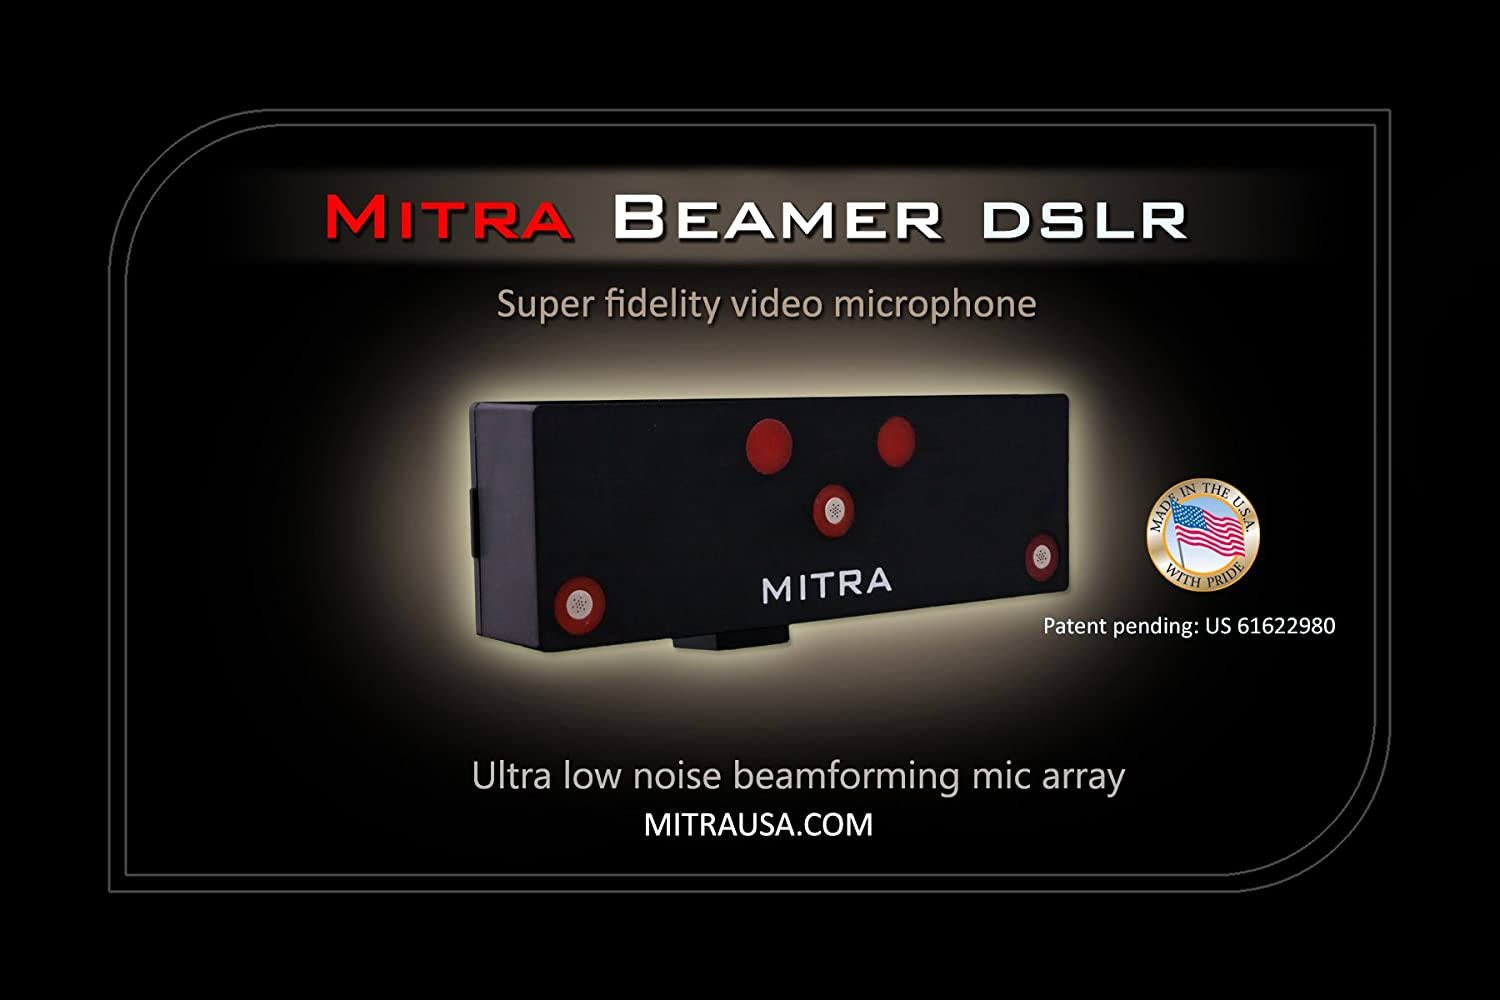 Mitra Beamer Dslr Professional Video Microphones Ultra Low Noise Microphone Camera Photo